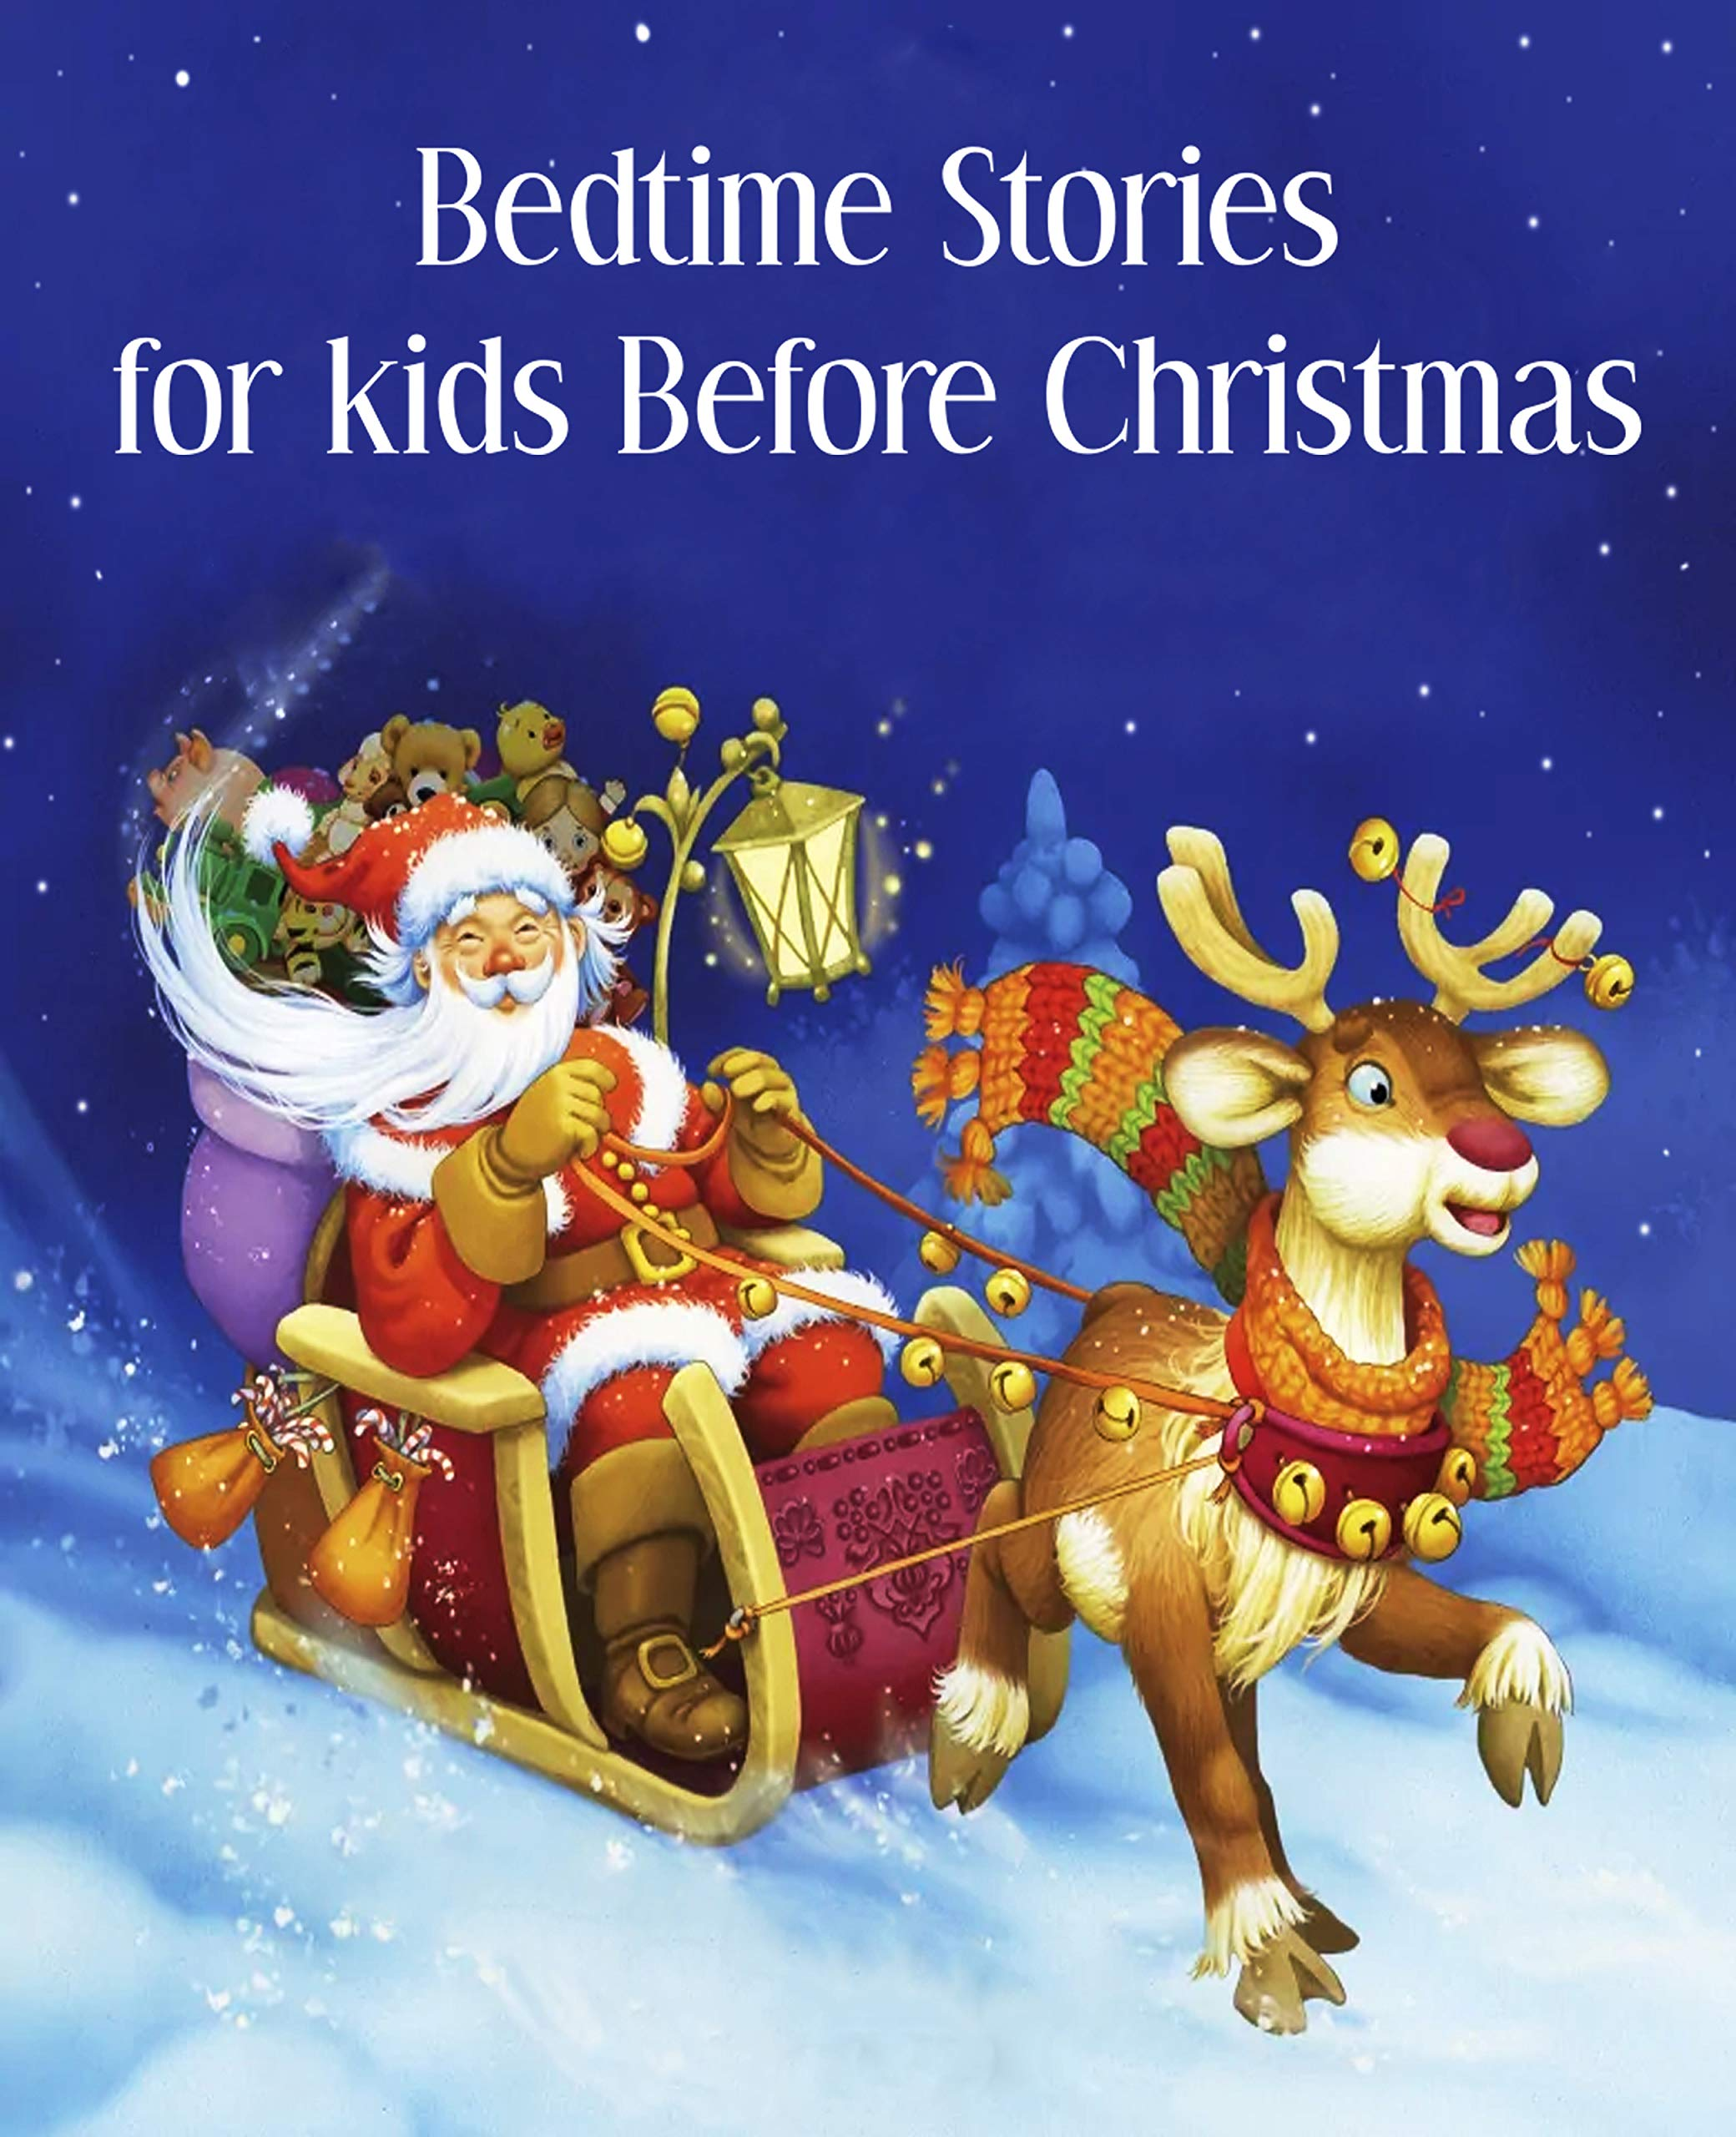 Bedtime Stories for Kids befoe Christmas: Fun and Calming Christmas Short Stories for Kids, Children and Toddlers to Fall Asleep Fast! Reduce Anxiety, Develop Inner Peace and Happiness